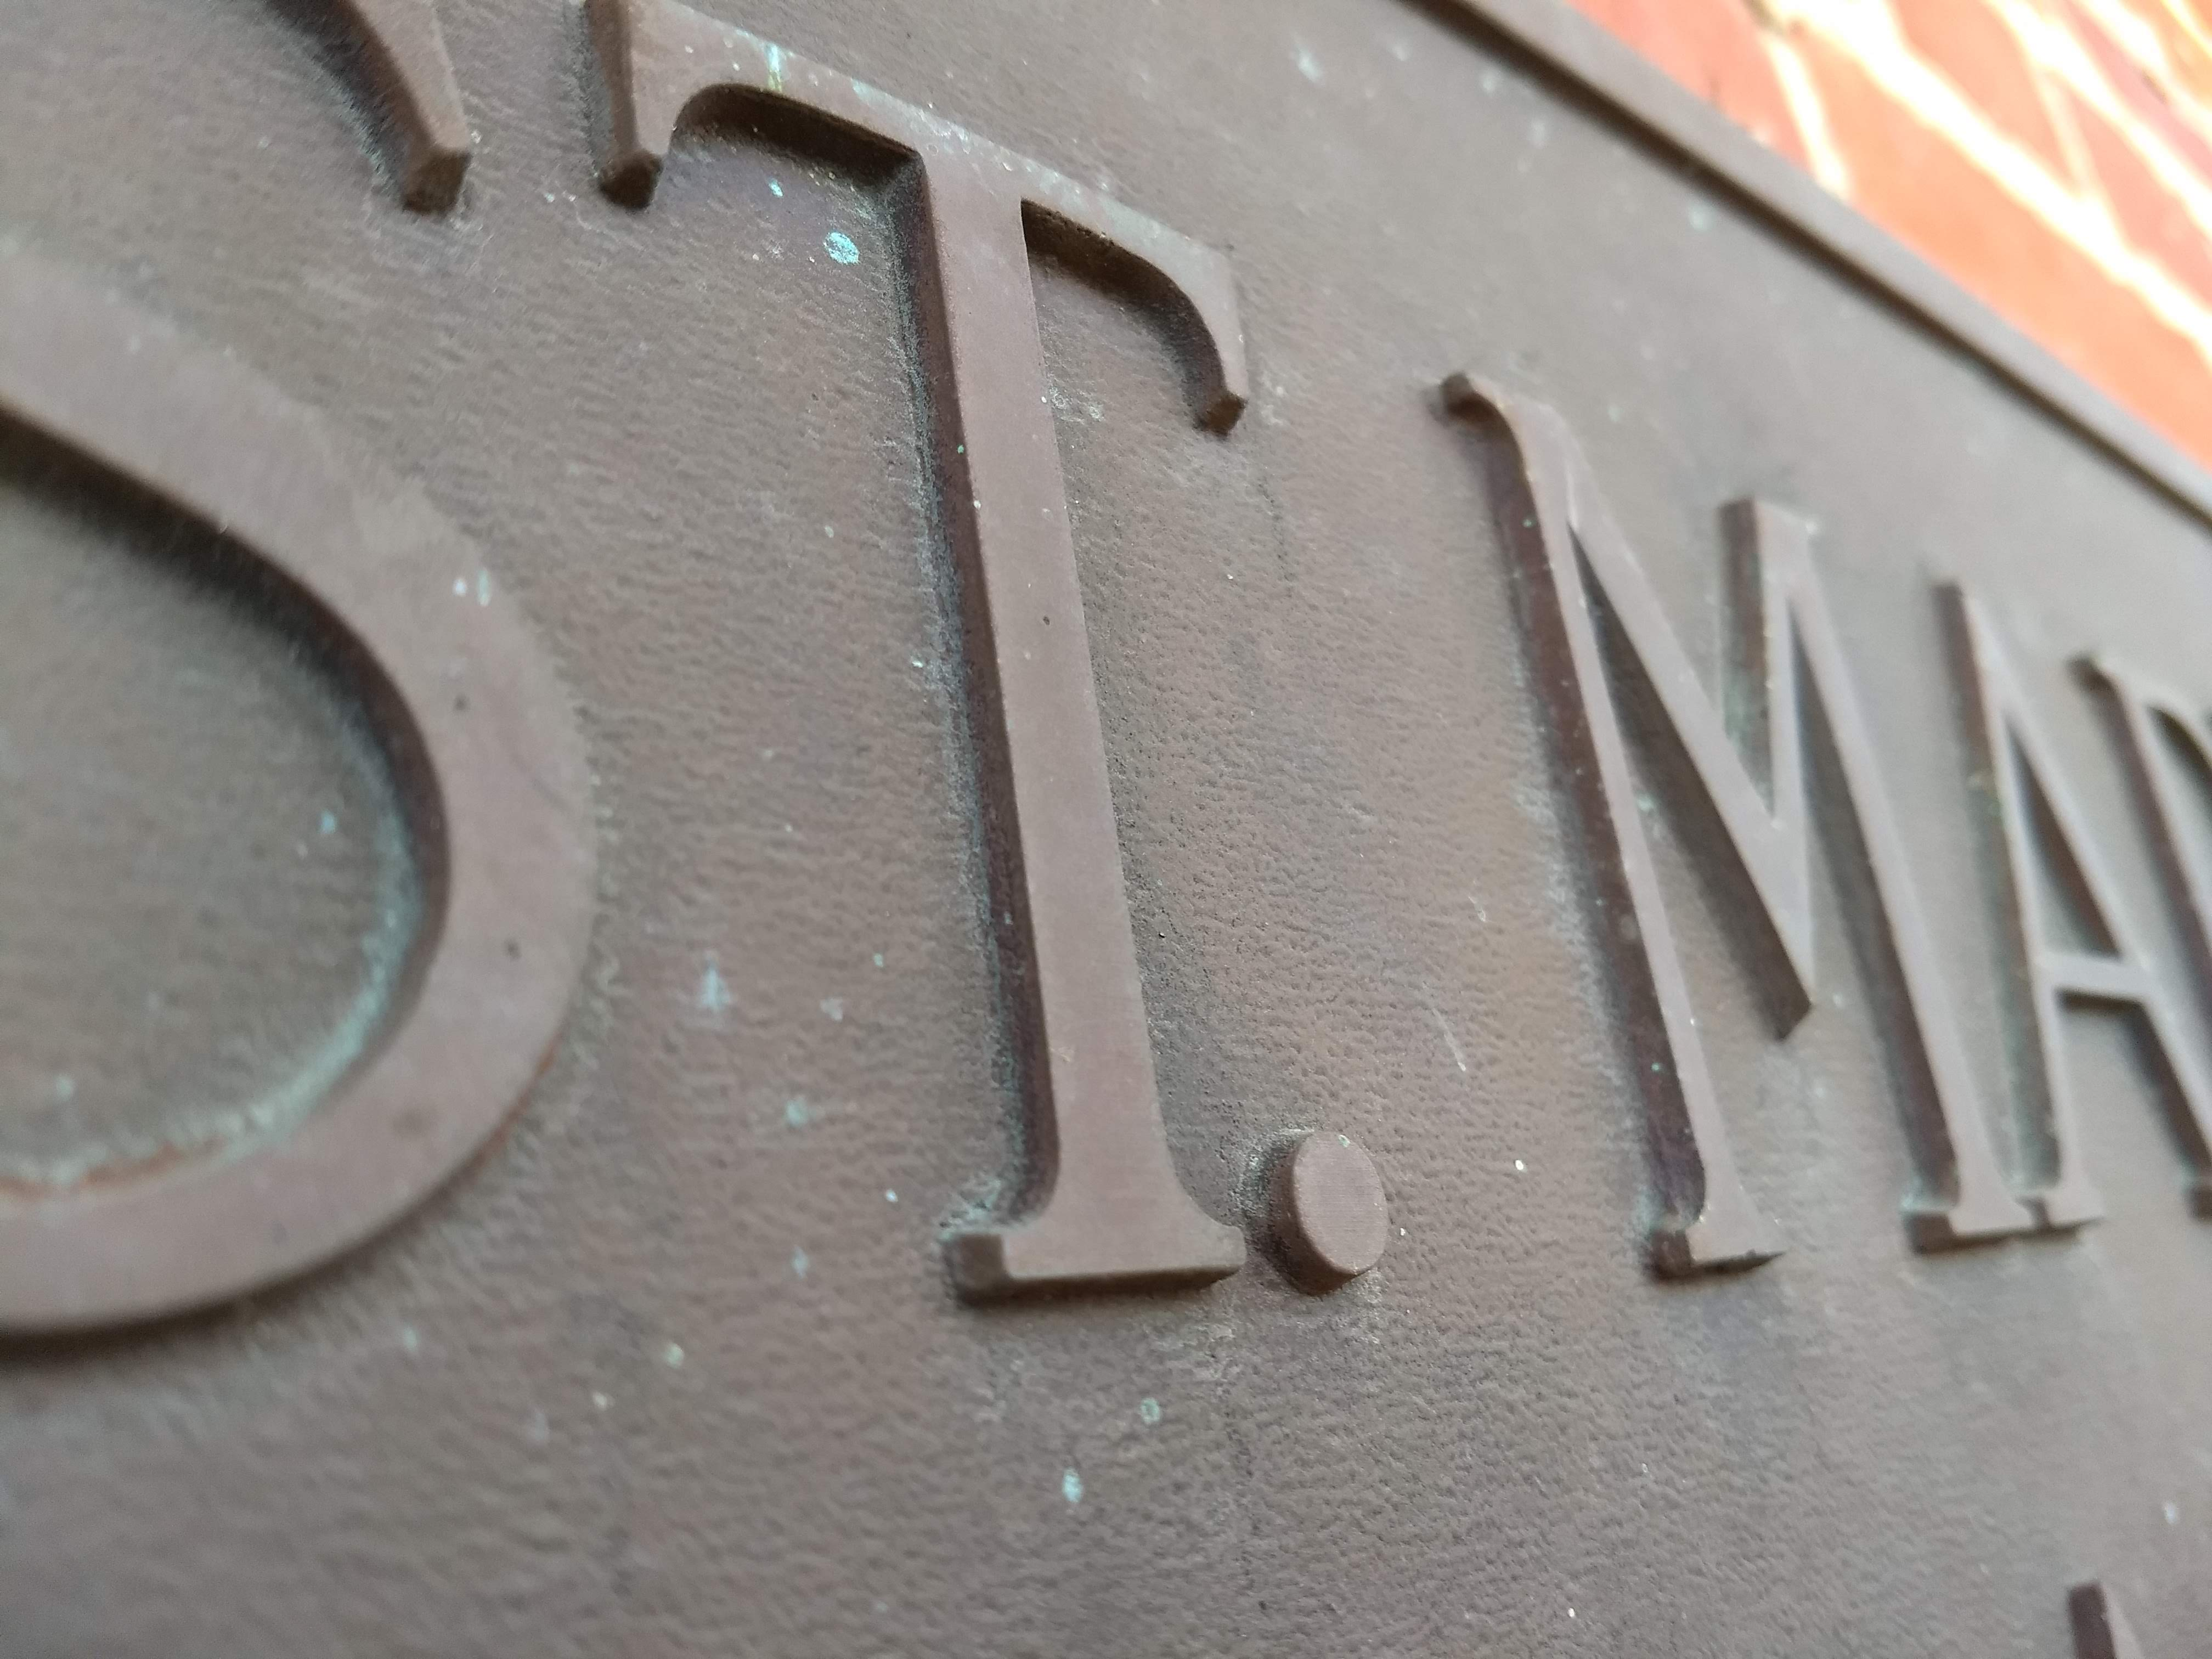 Close up detail of the St. Mary's Hall plaque.